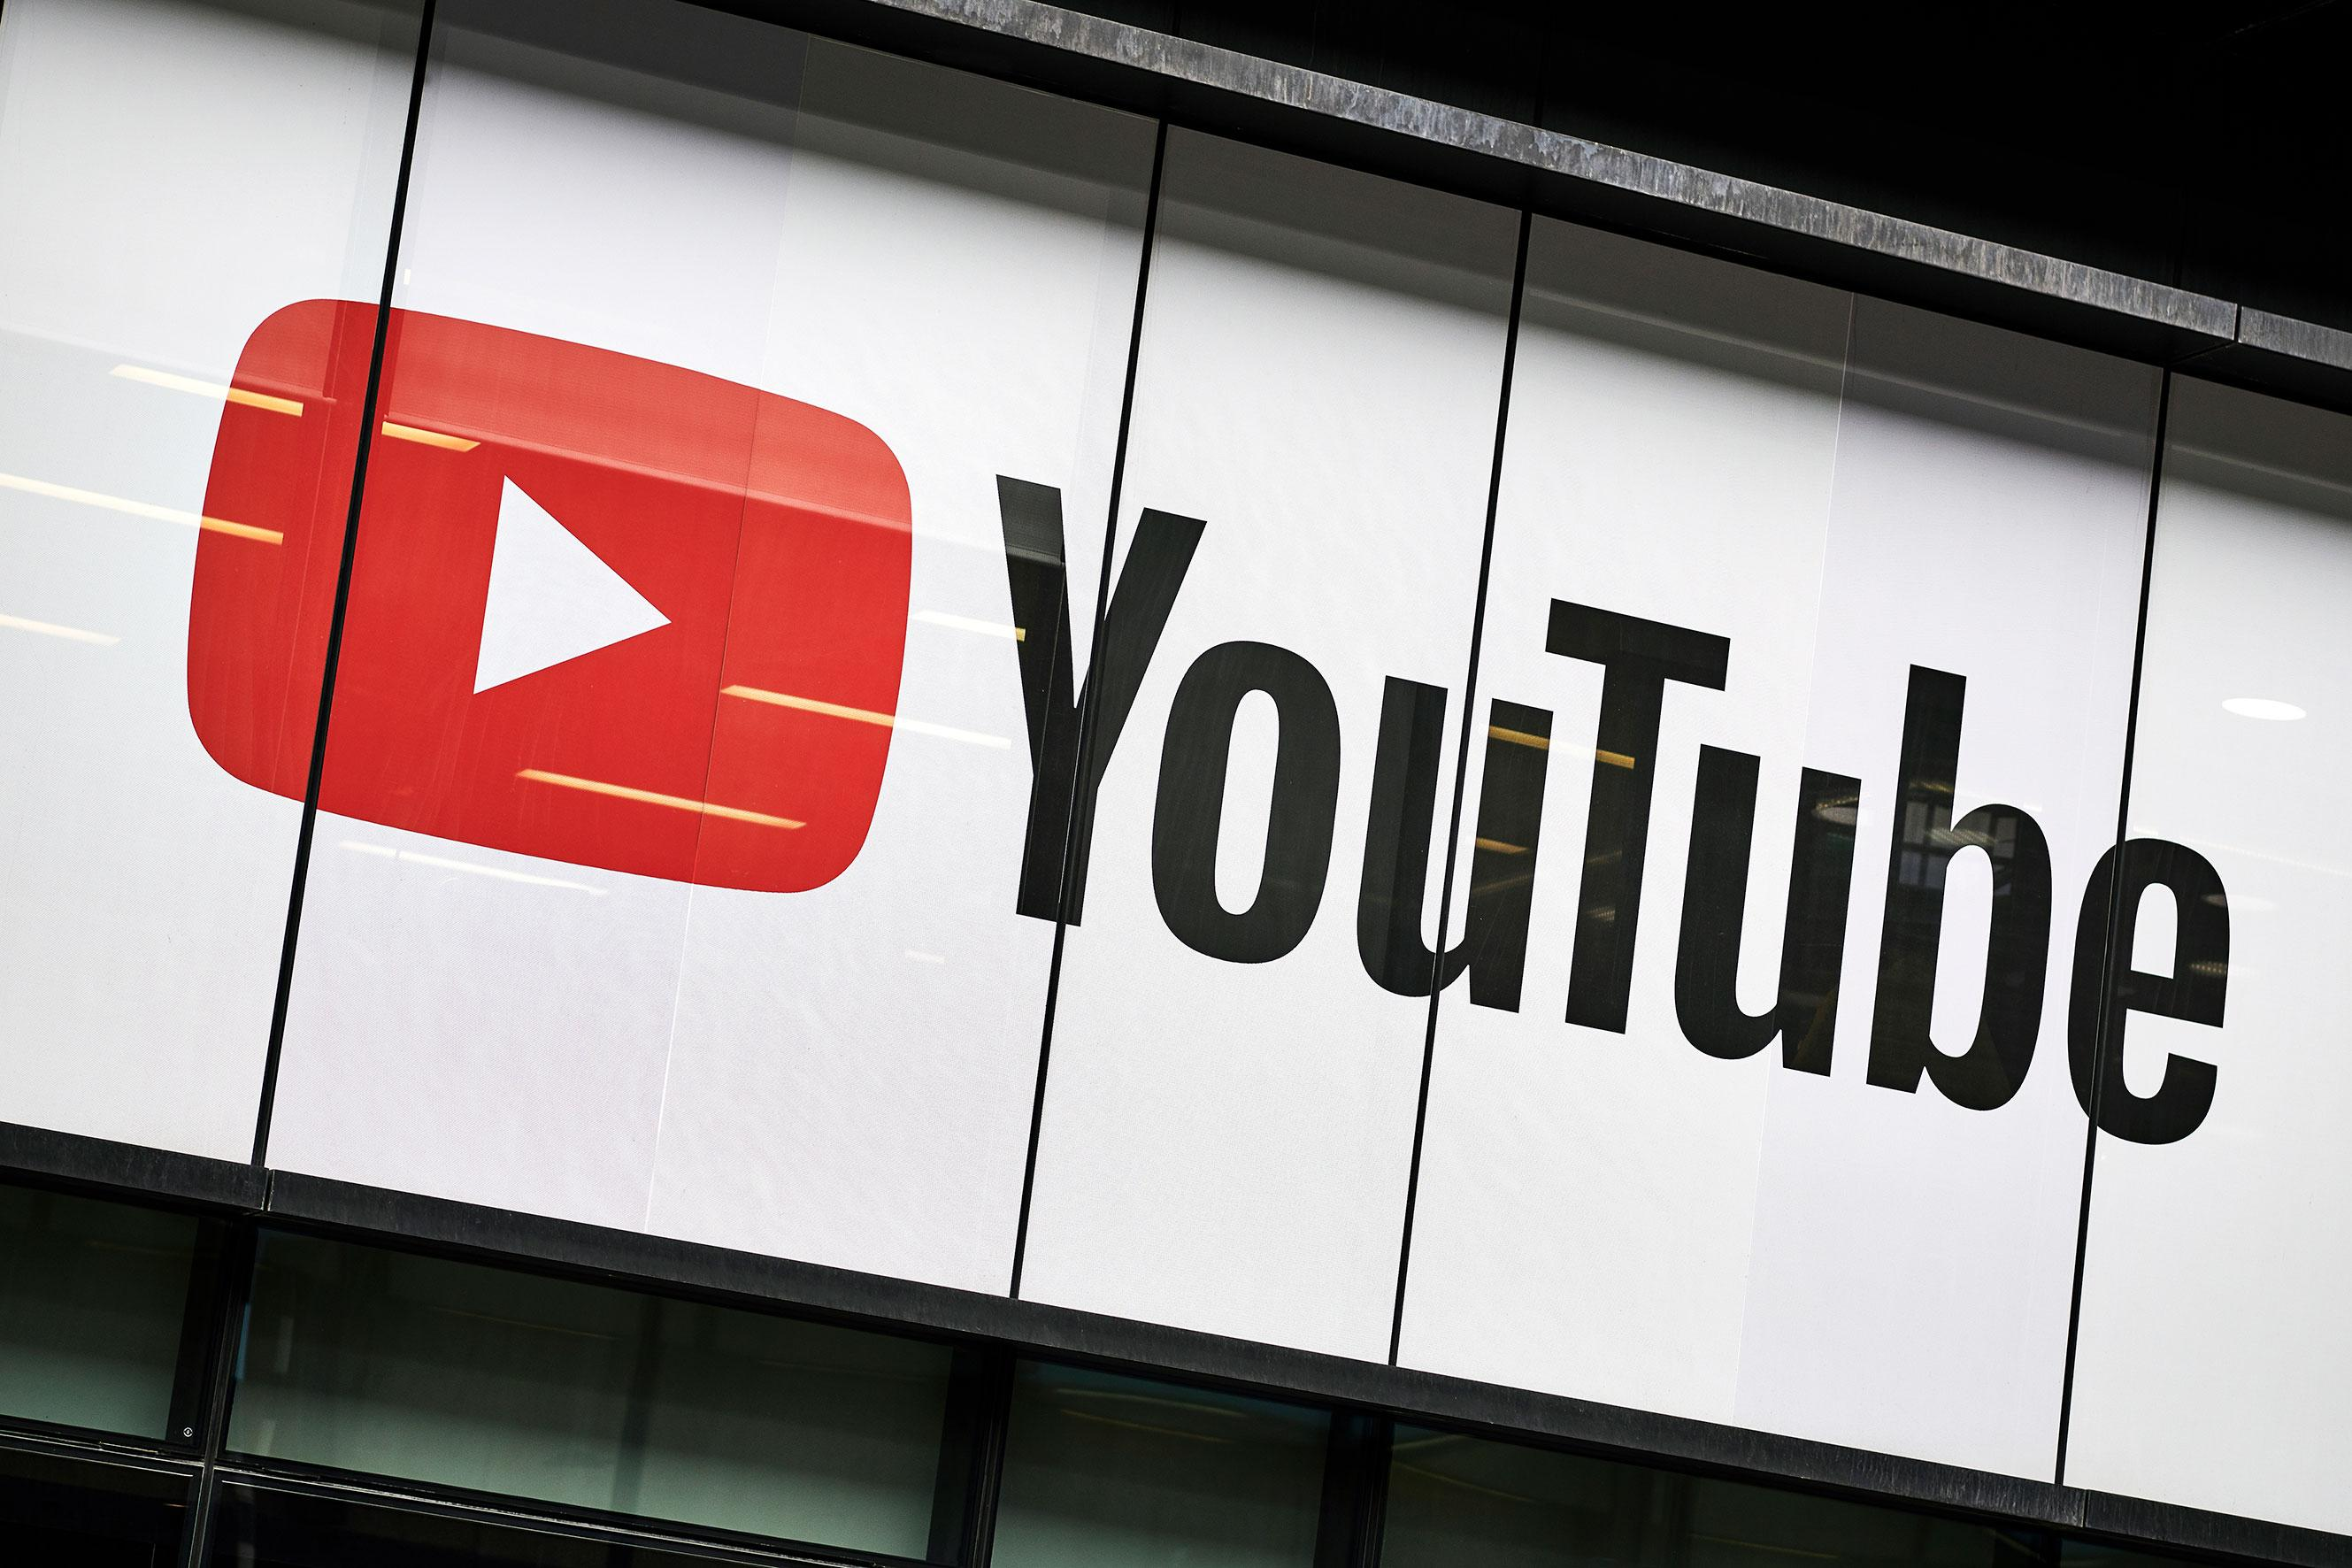 Making YouTube Videos: Safety Tips You Should Know